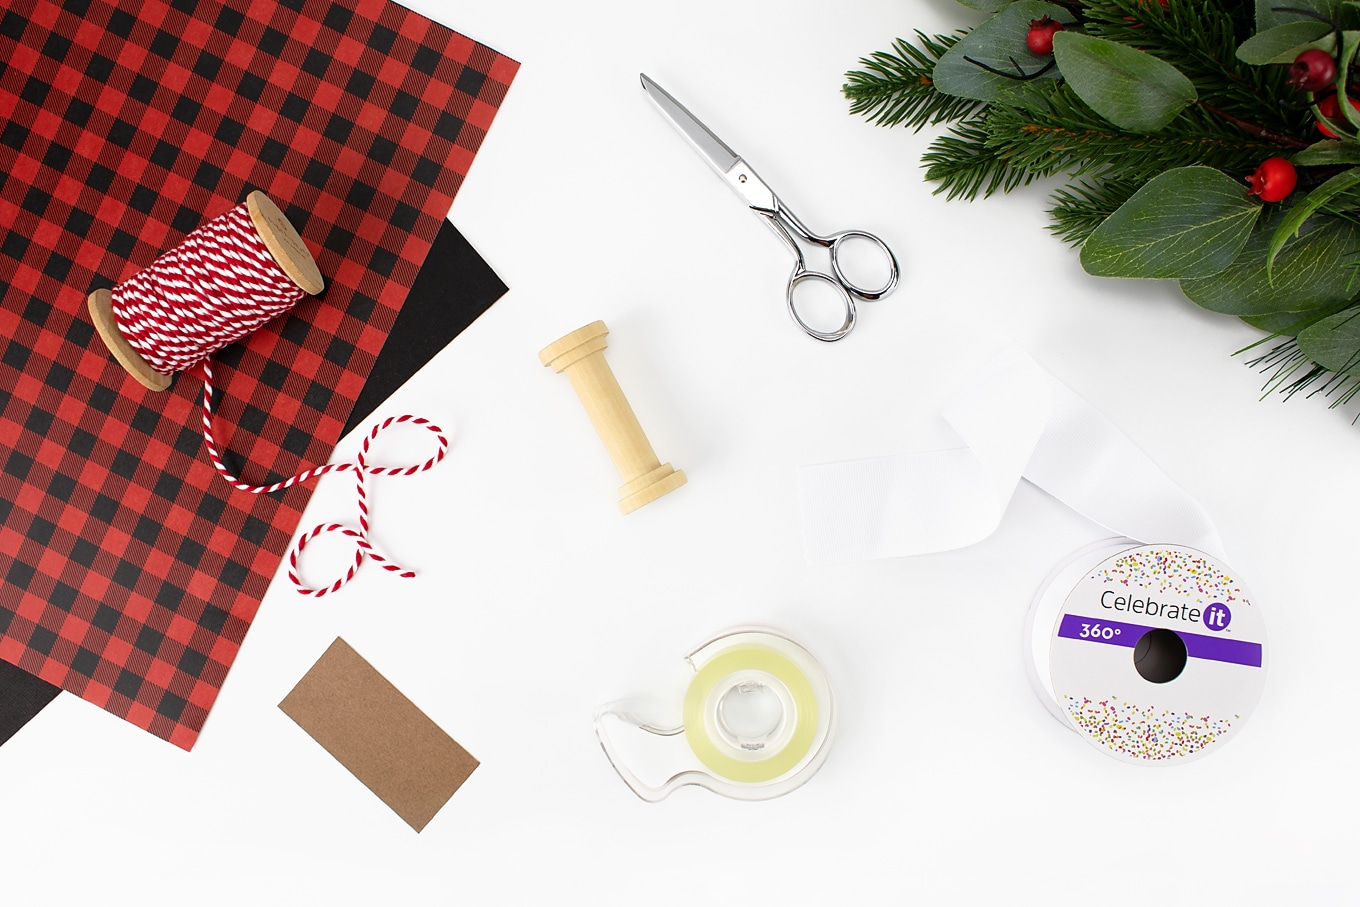 Supplies Needed for DIY Toilet Paper Ornament